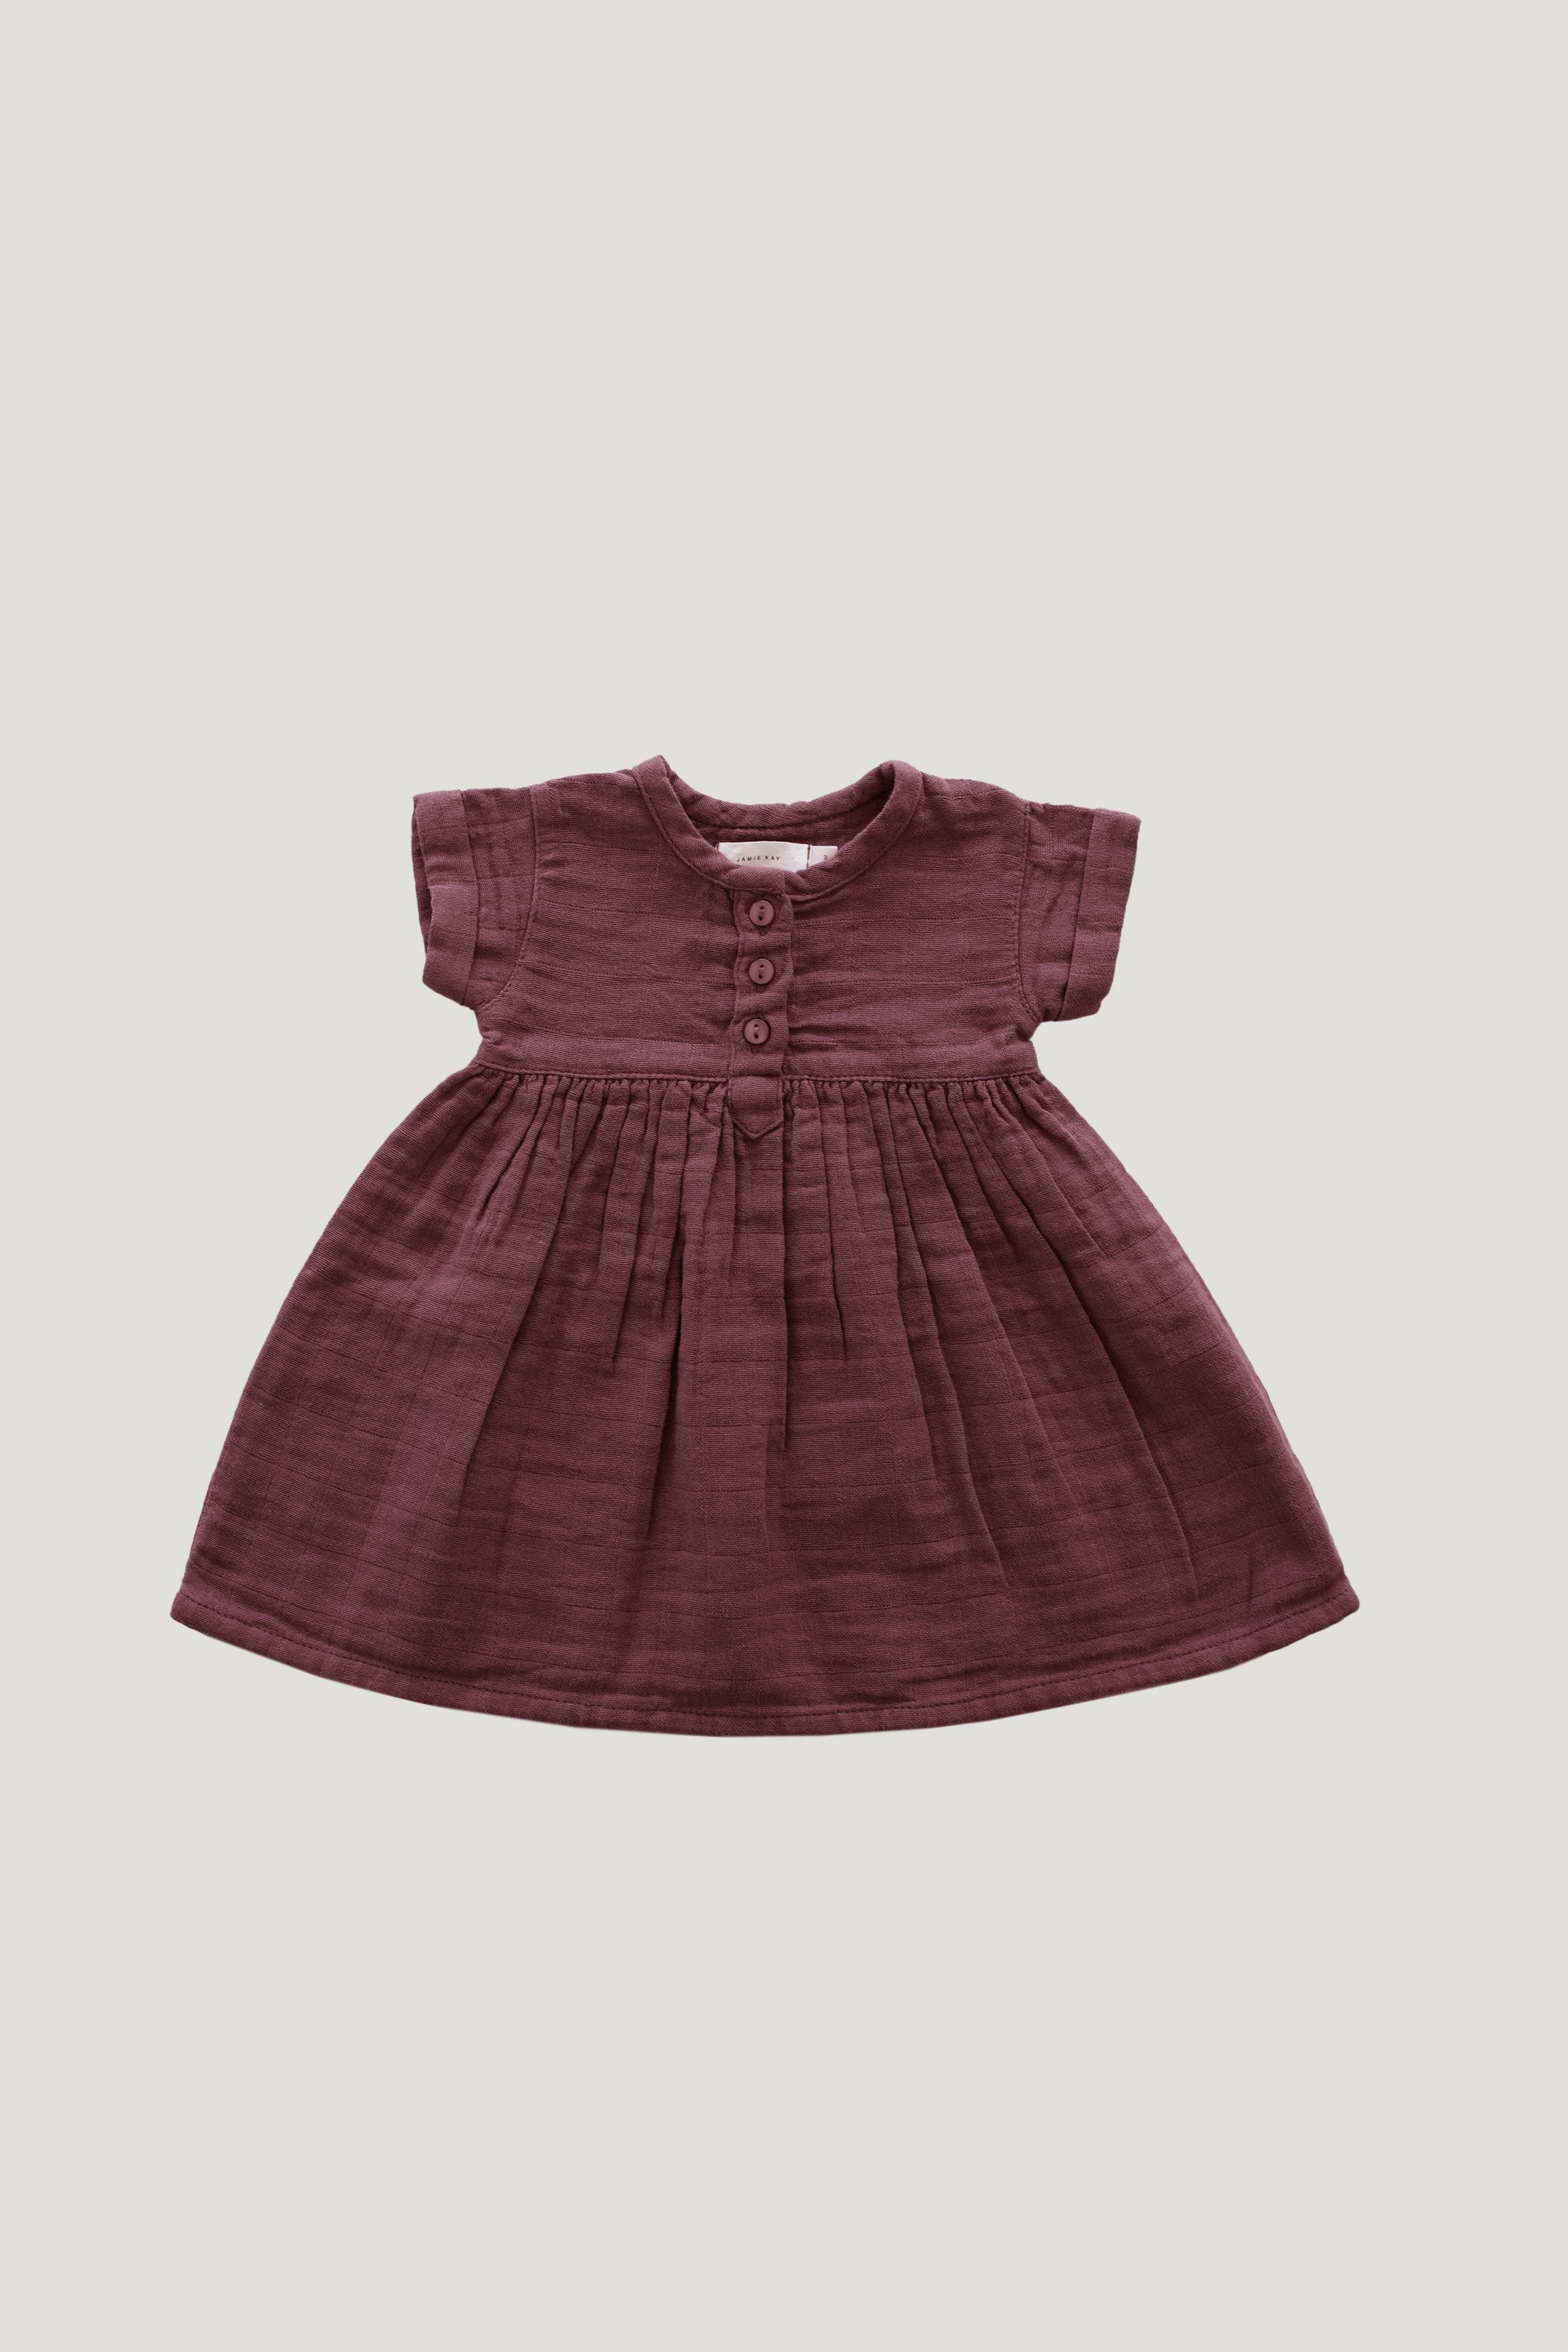 Organic Cotton Muslin Short Sleeve Dress - Berry Sorbet